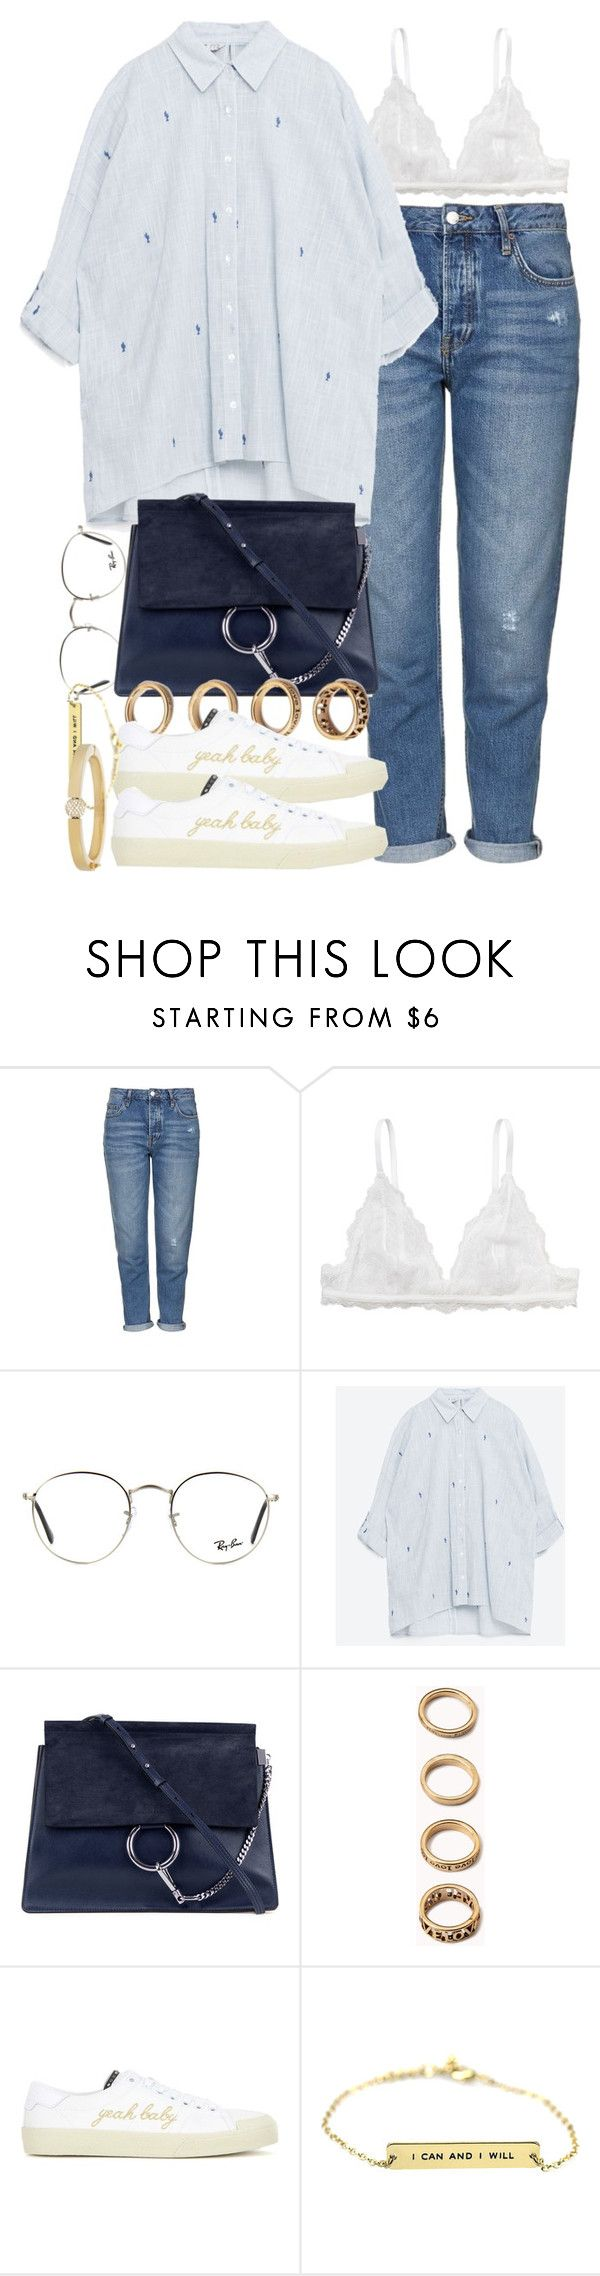 """""""Sin título #3826"""" by hellomissapple ❤ liked on Polyvore featuring Topshop, Monki, Ray-Ban, Chloé, Forever 21 and Yves Saint Laurent"""